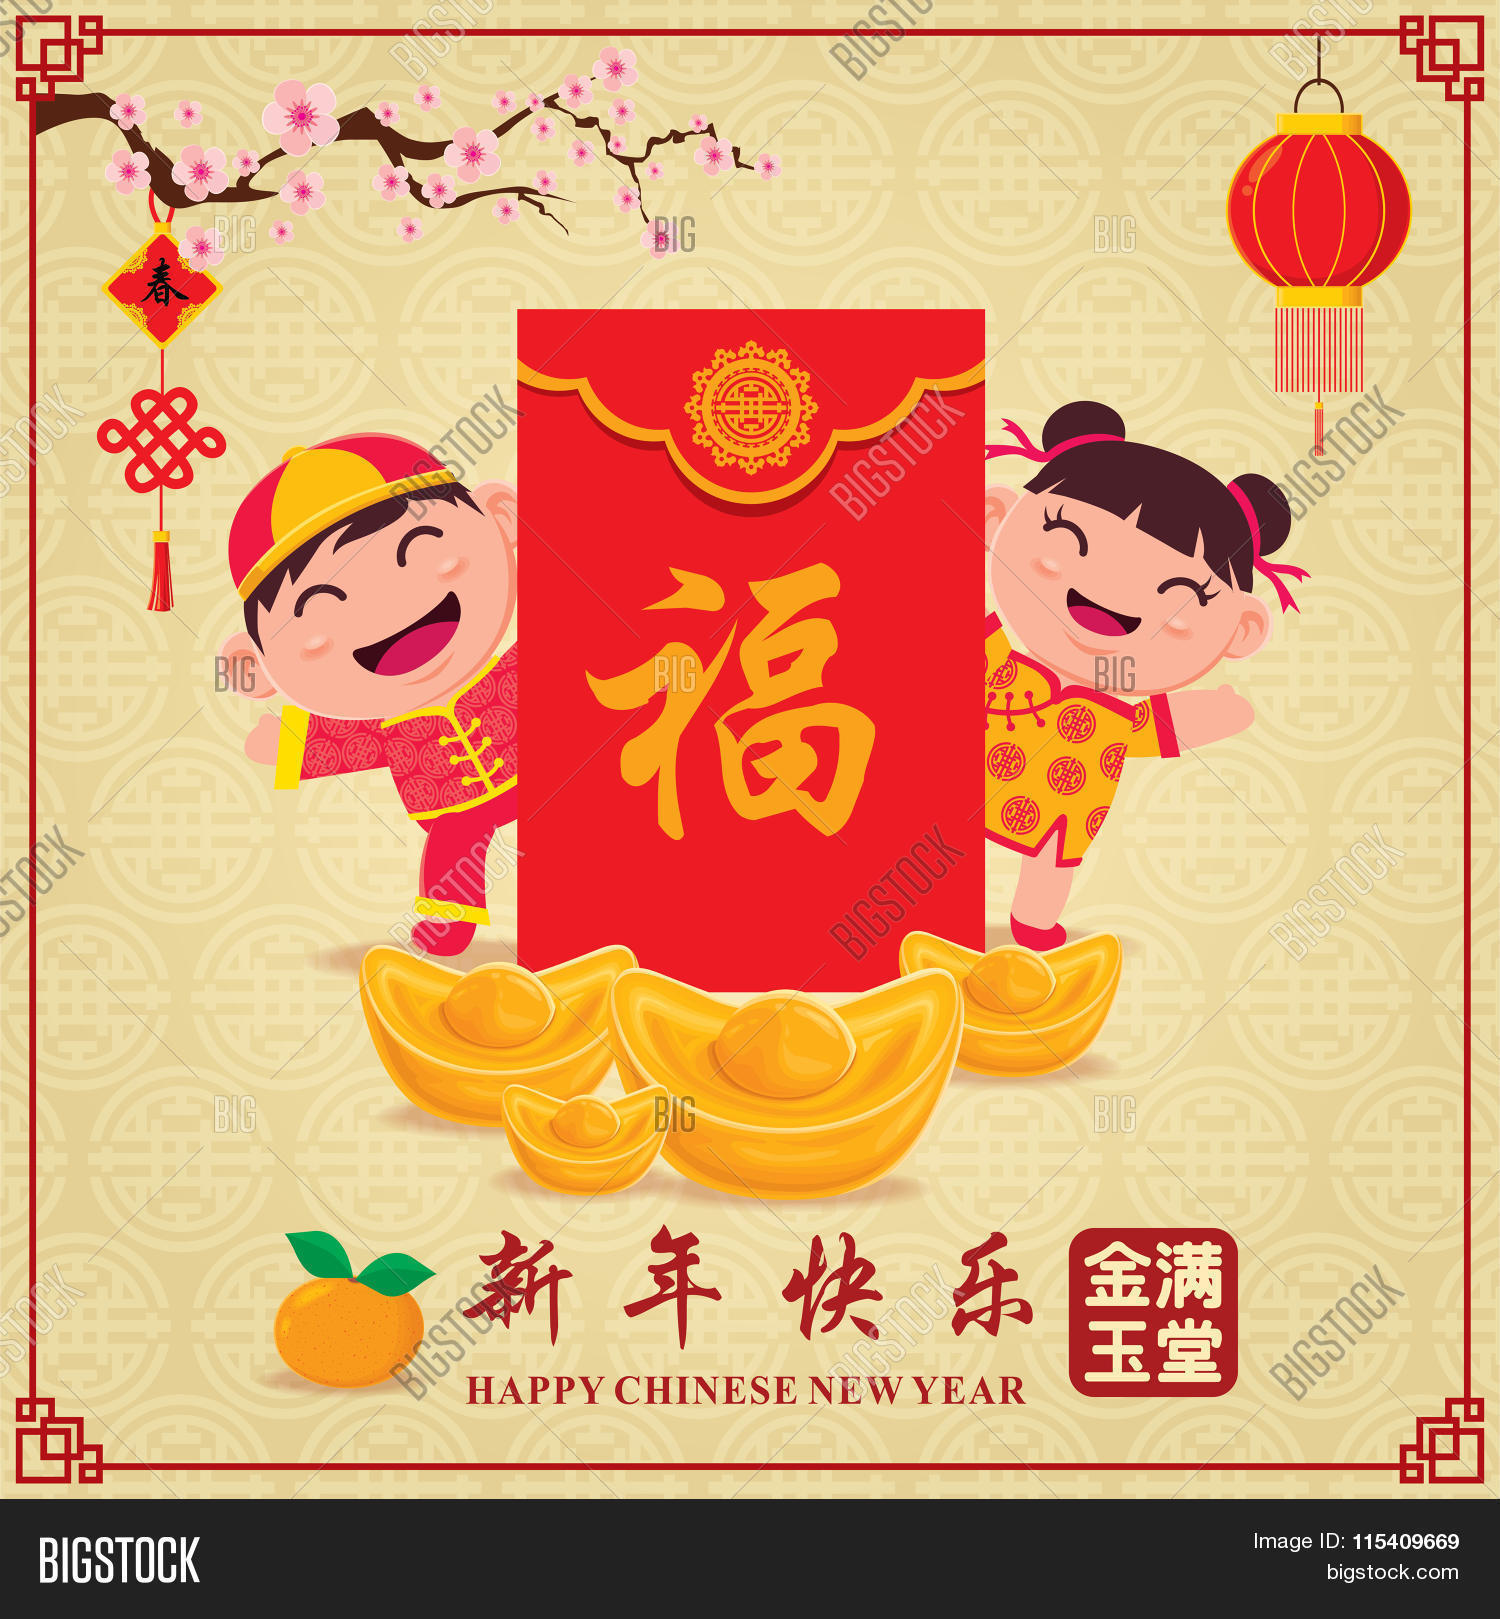 Vintage Chinese Calendar : Vintage chinese new year poster design with